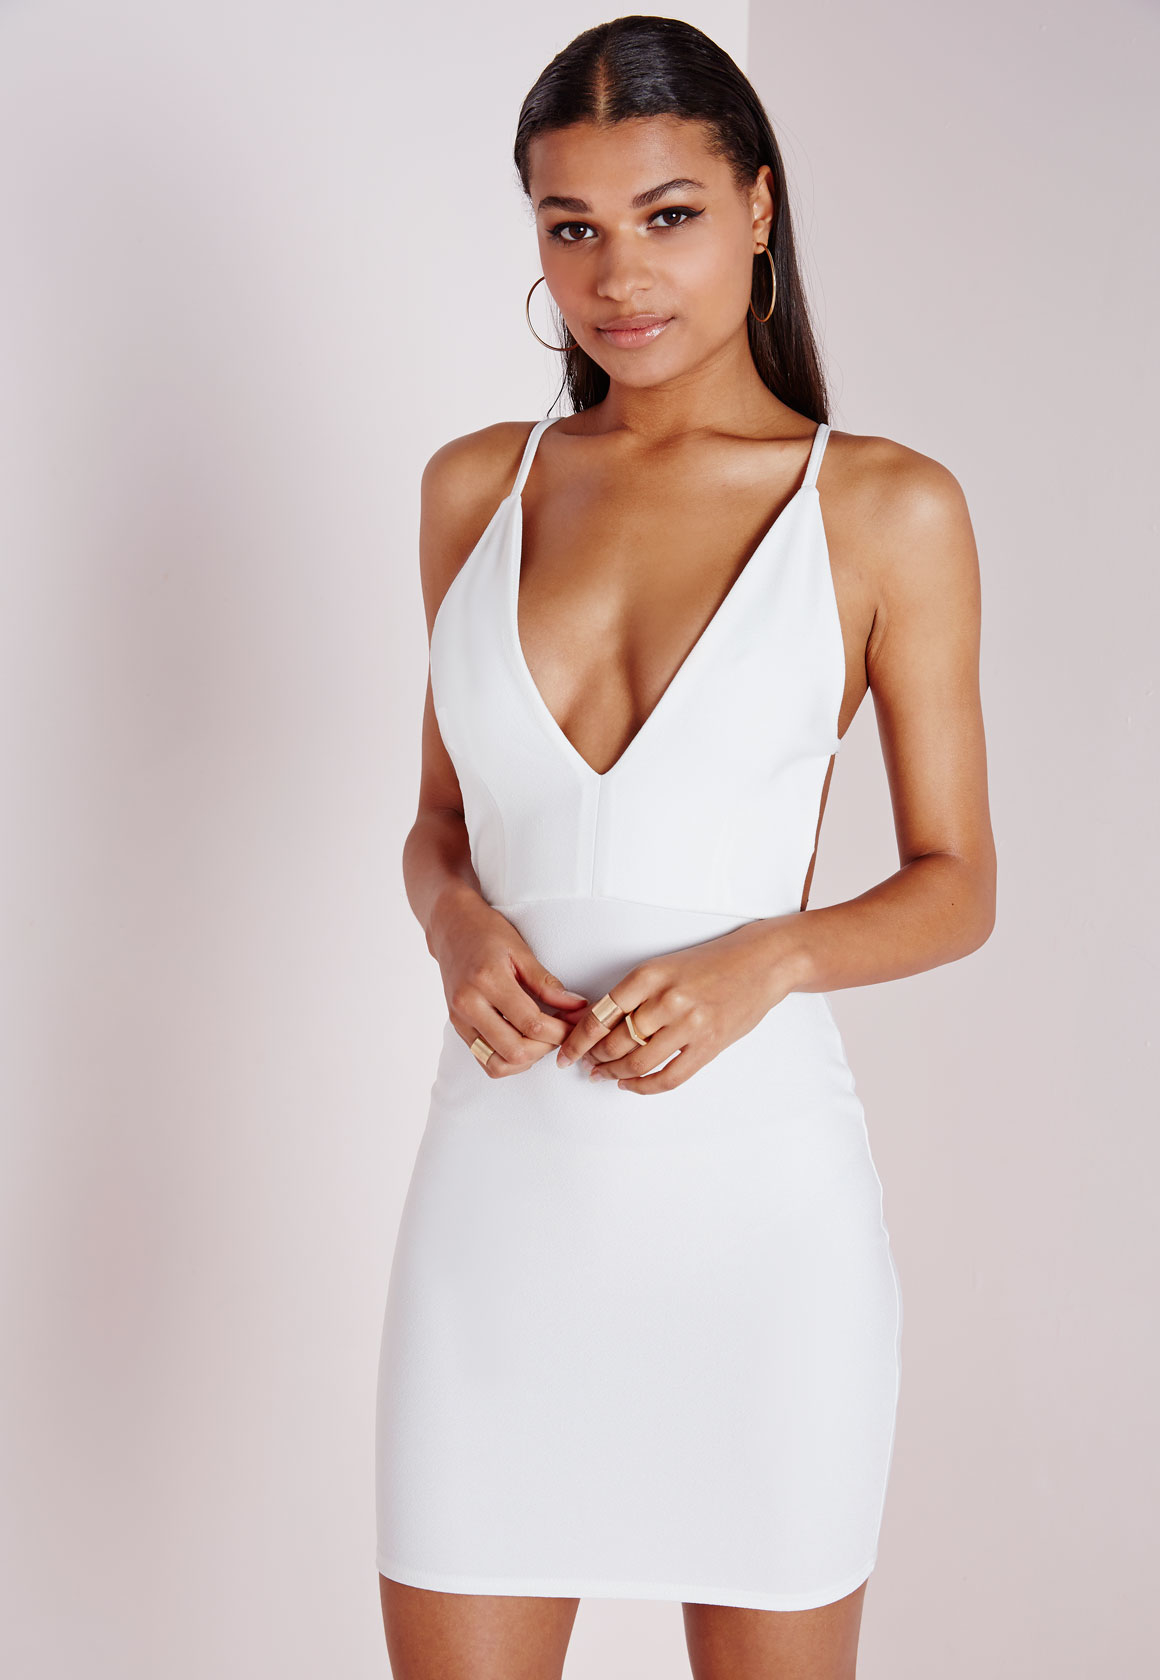 b9388e4750 Lyst - Missguided Crepe Extreme Plunge Strappy Bodycon Dress White ...